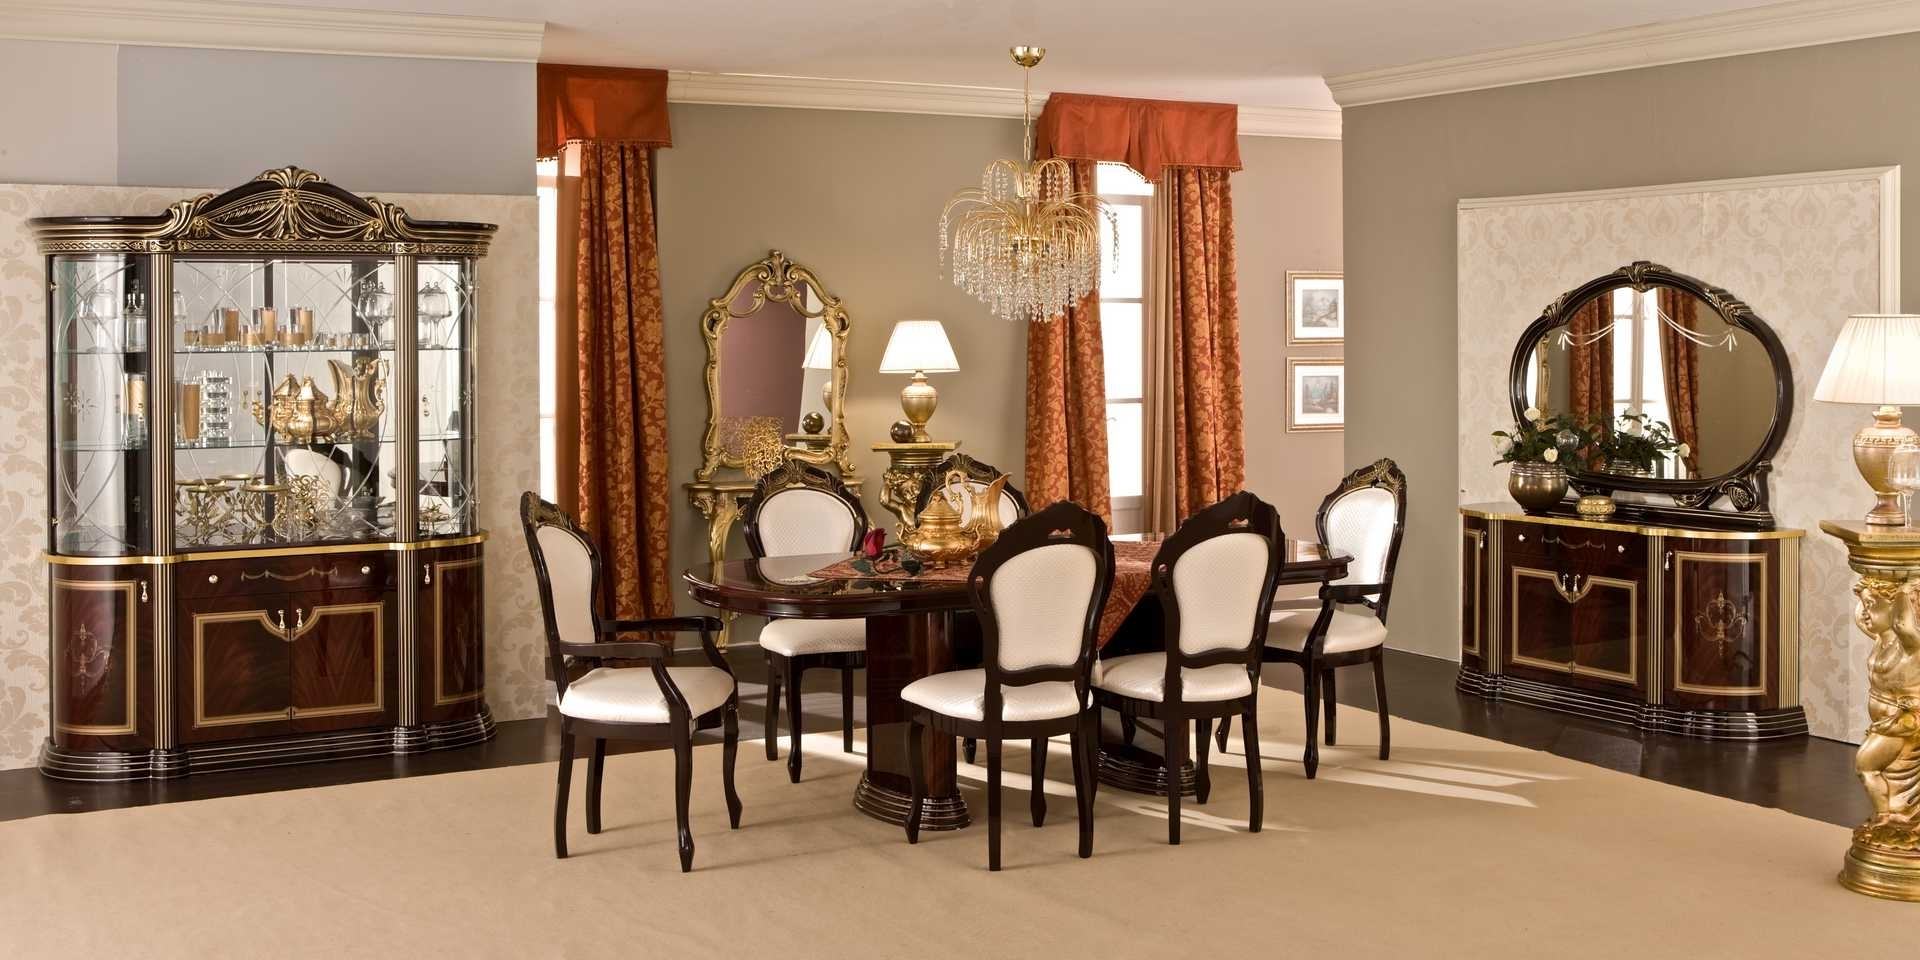 rustic italian dining room in classic look 8426 house decoration ideas. Black Bedroom Furniture Sets. Home Design Ideas